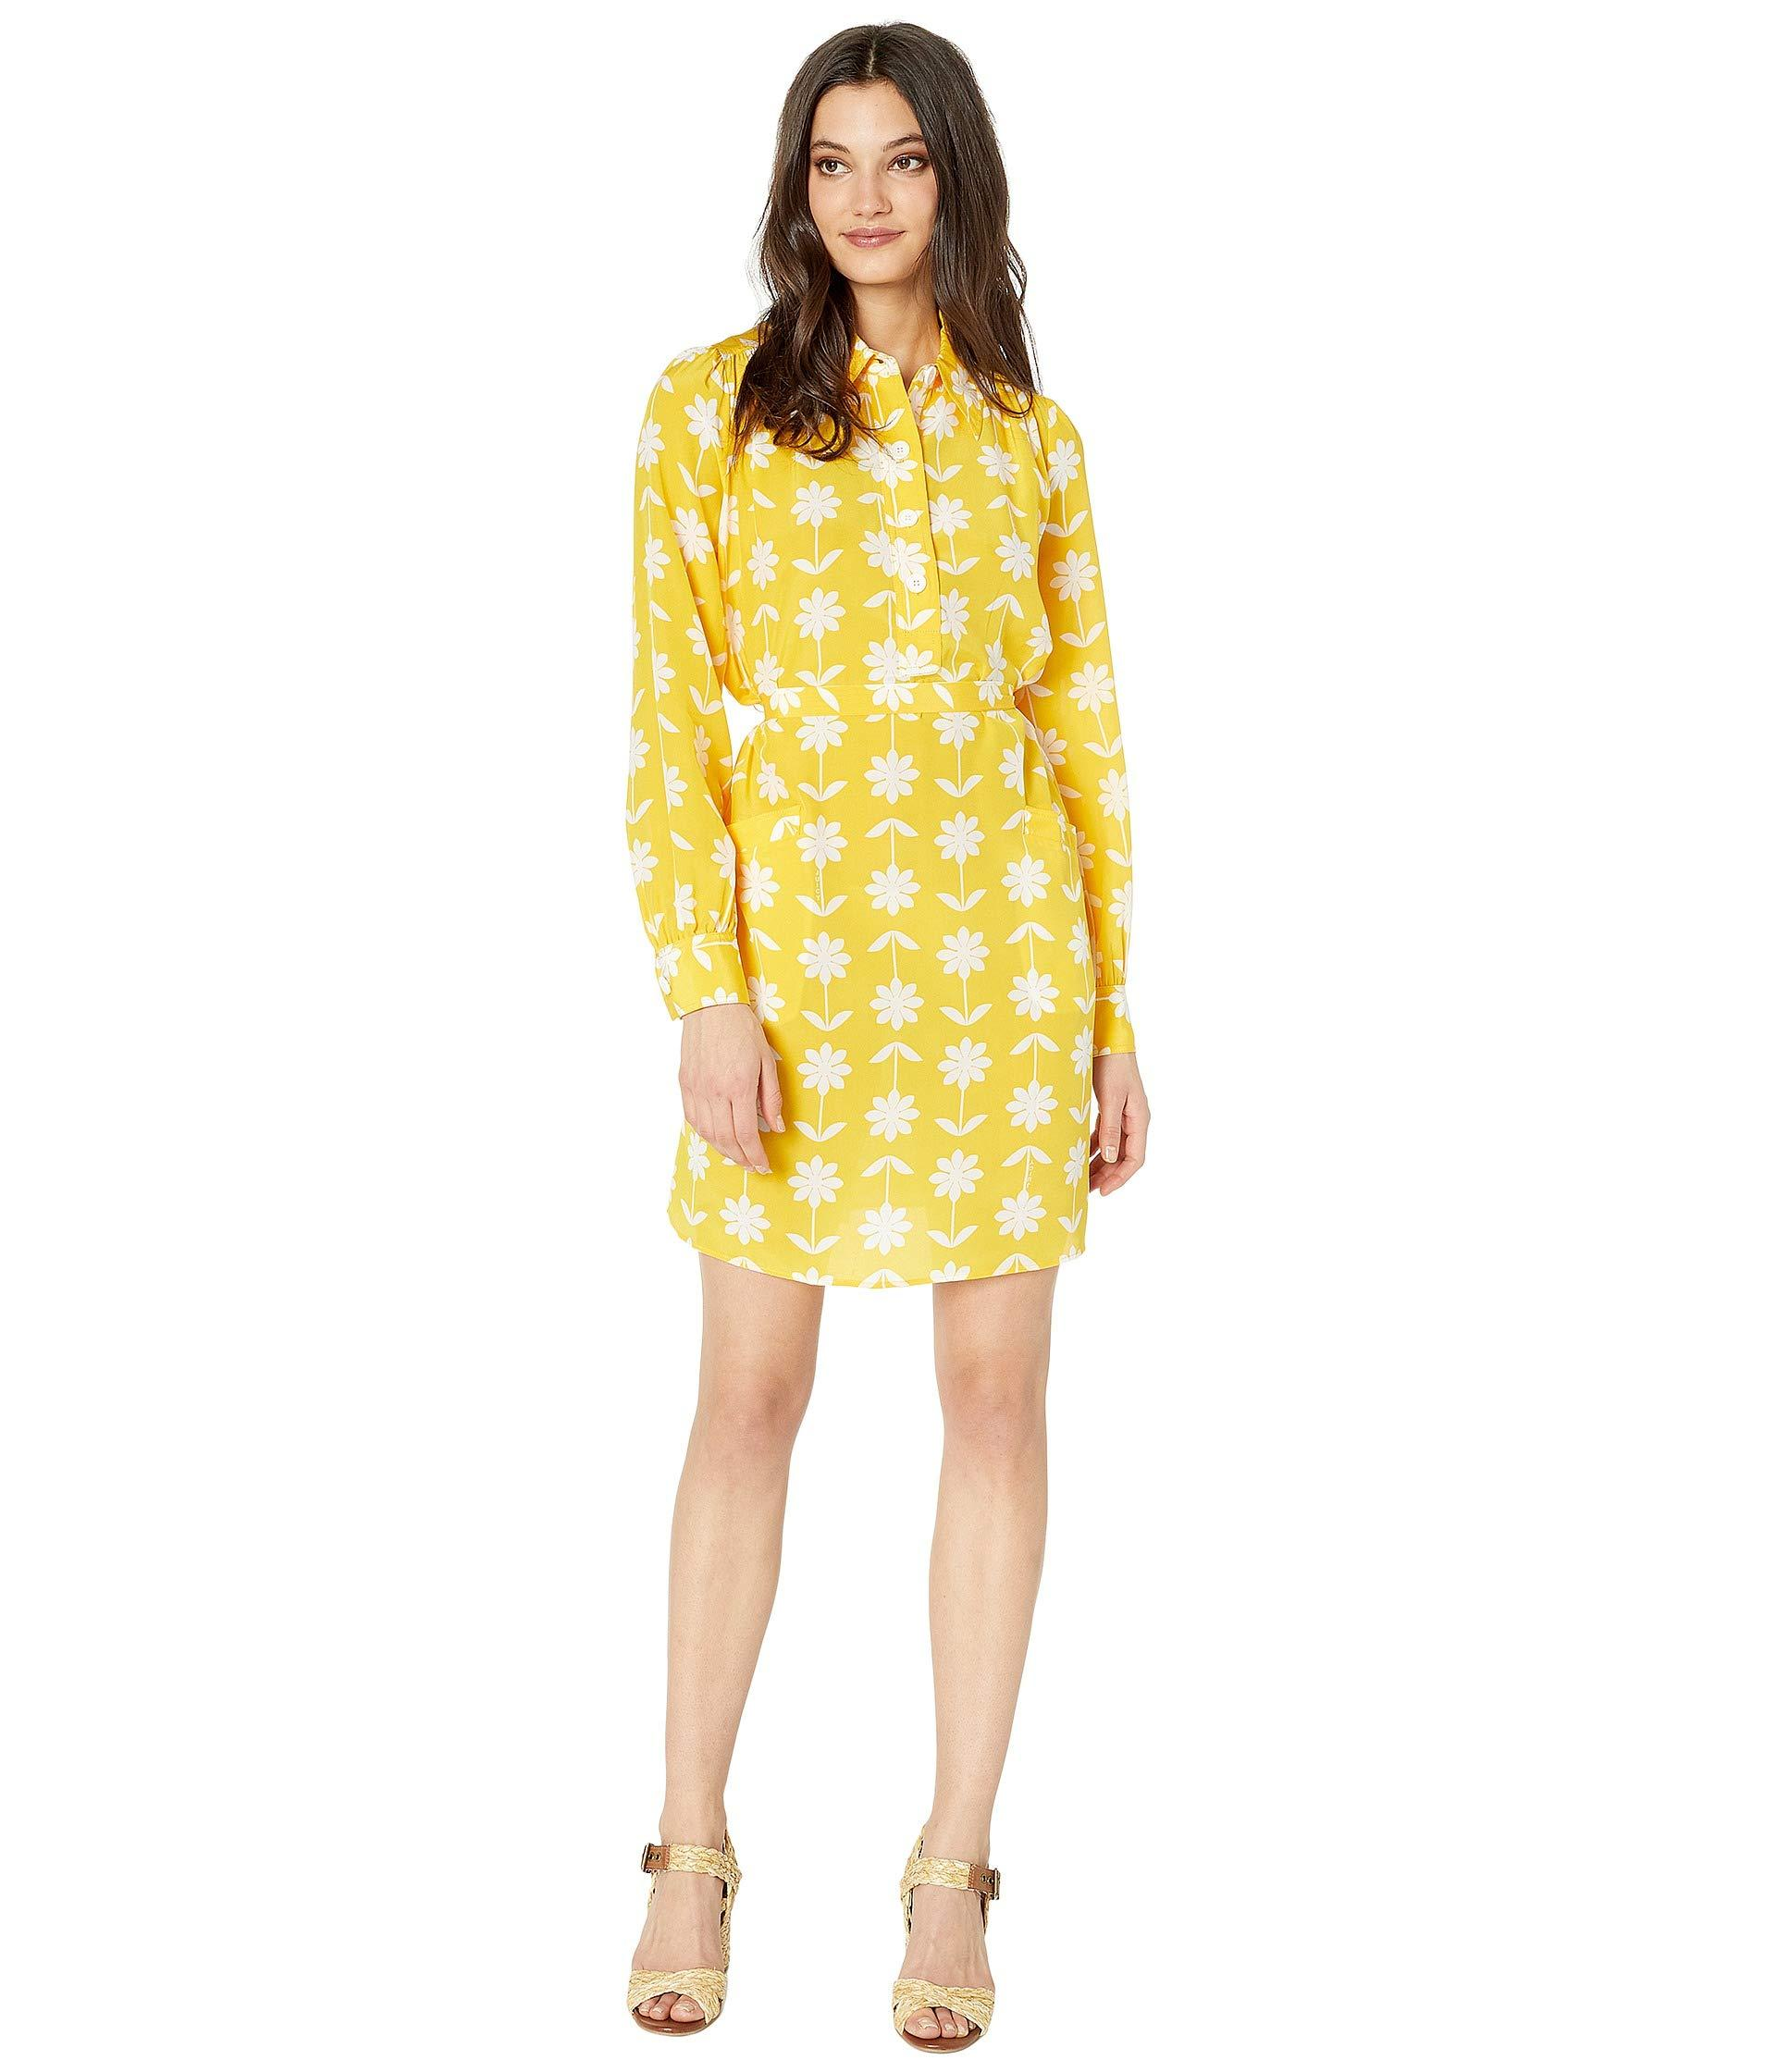 70bd04cc580c Lyst - Juicy Couture Silk Marigold Floral Dress in Yellow